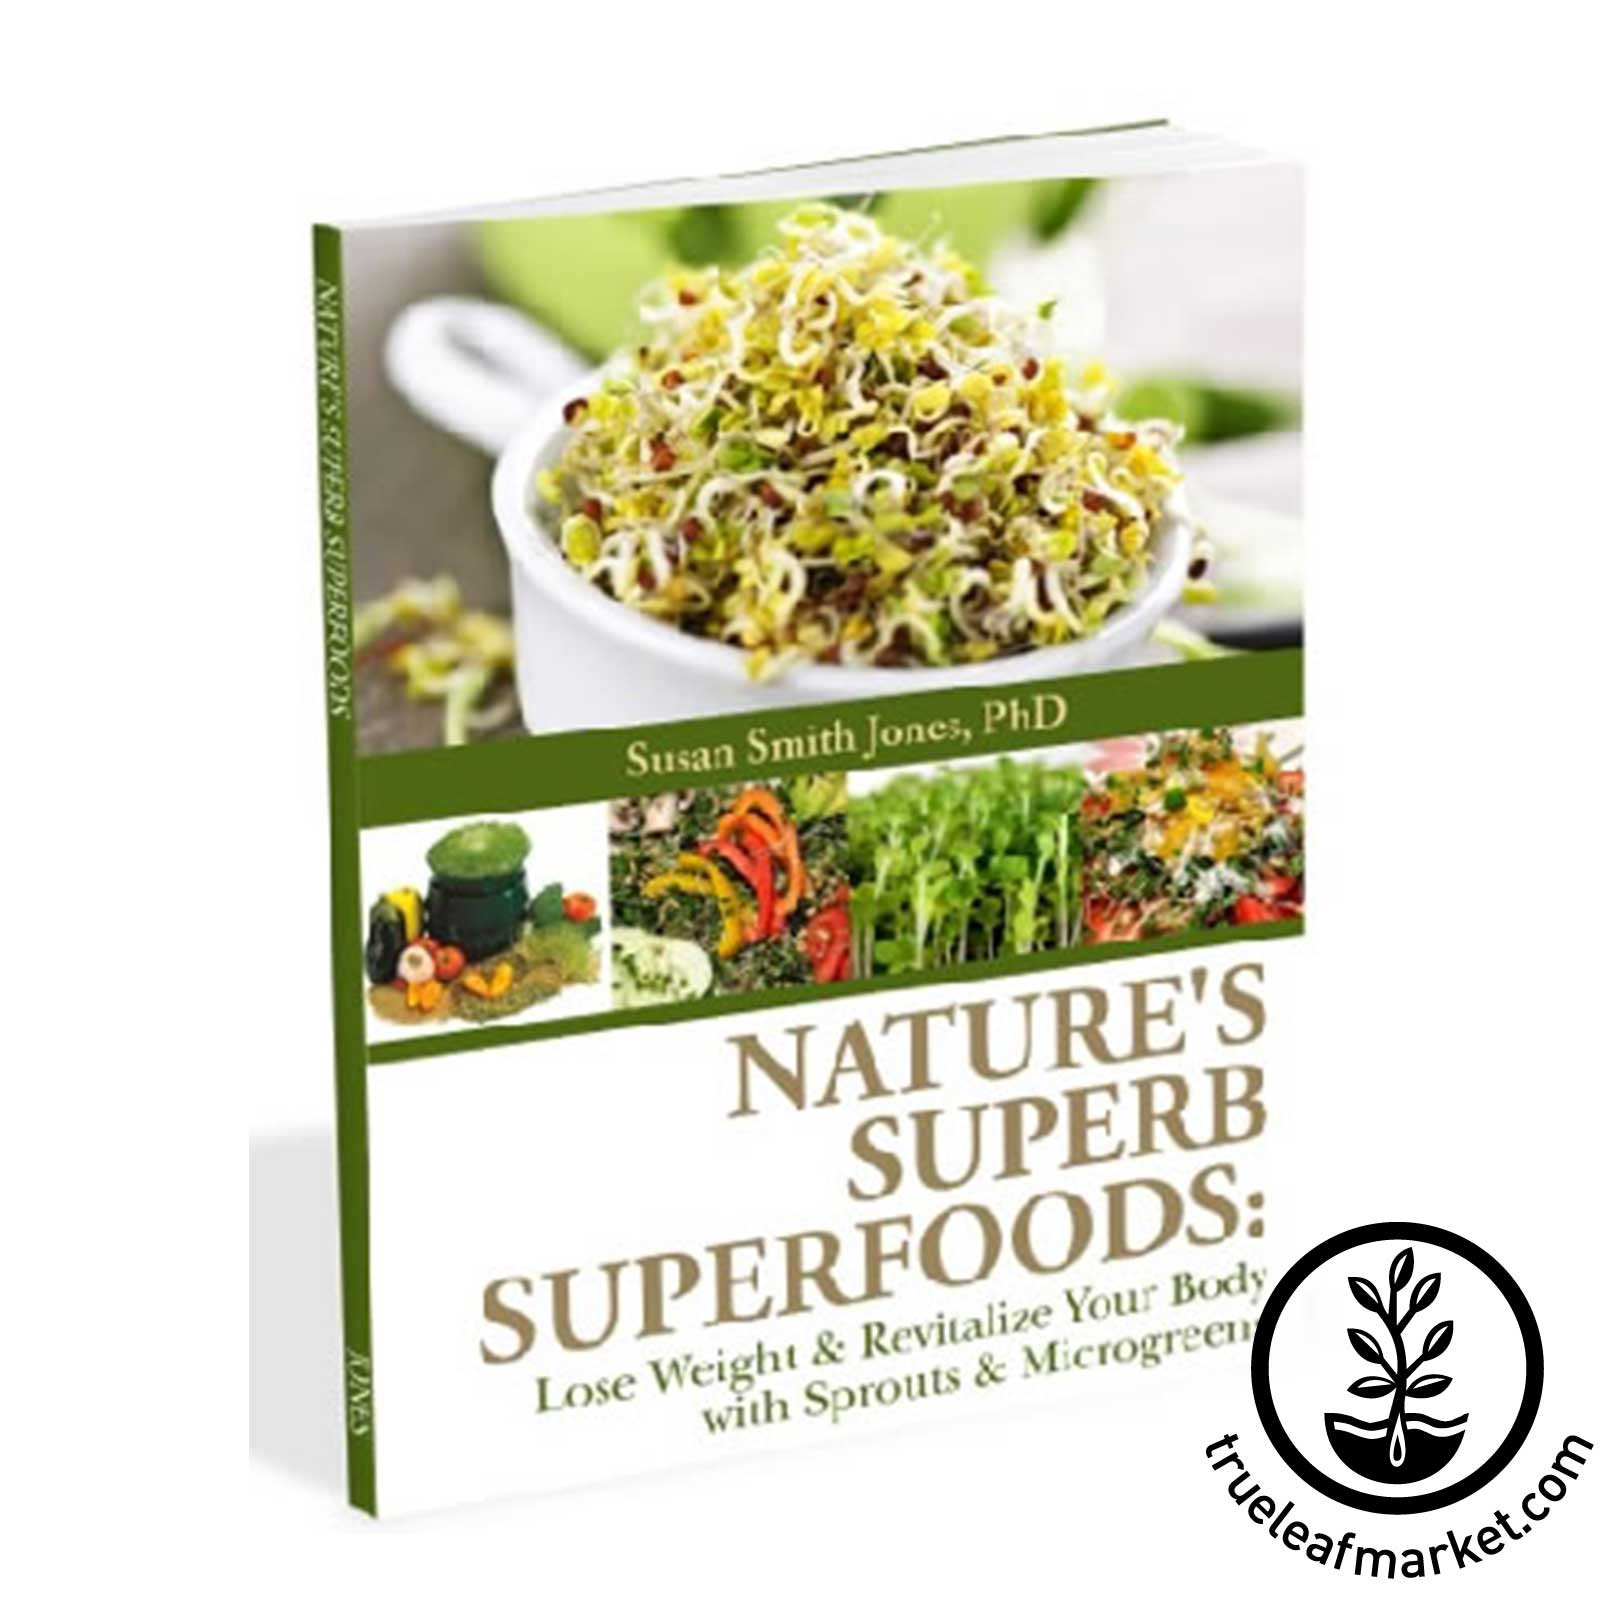 Natures Superb Superfoods - eBook by Susan Smith Jones PhD